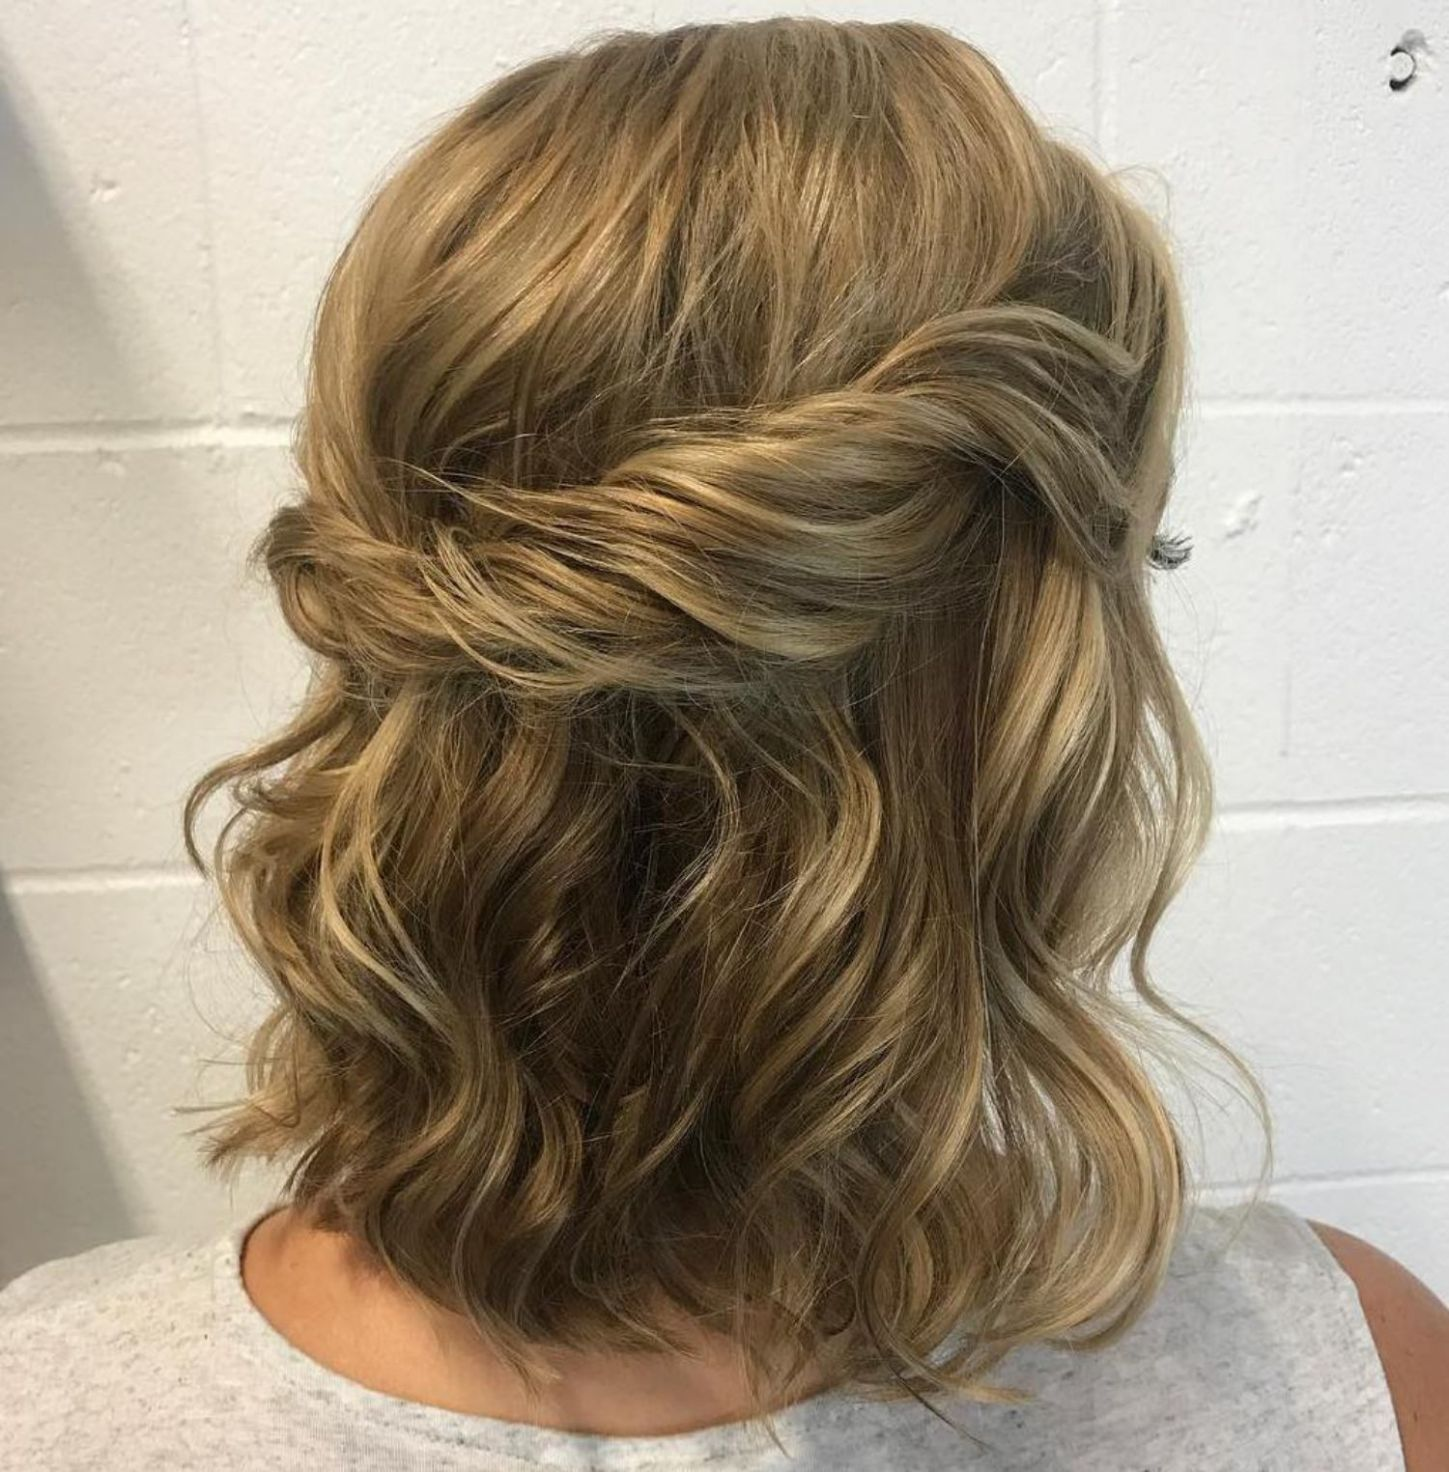 Wavy Half Up Half Down Hairstyle in 18   Updos for medium length ...